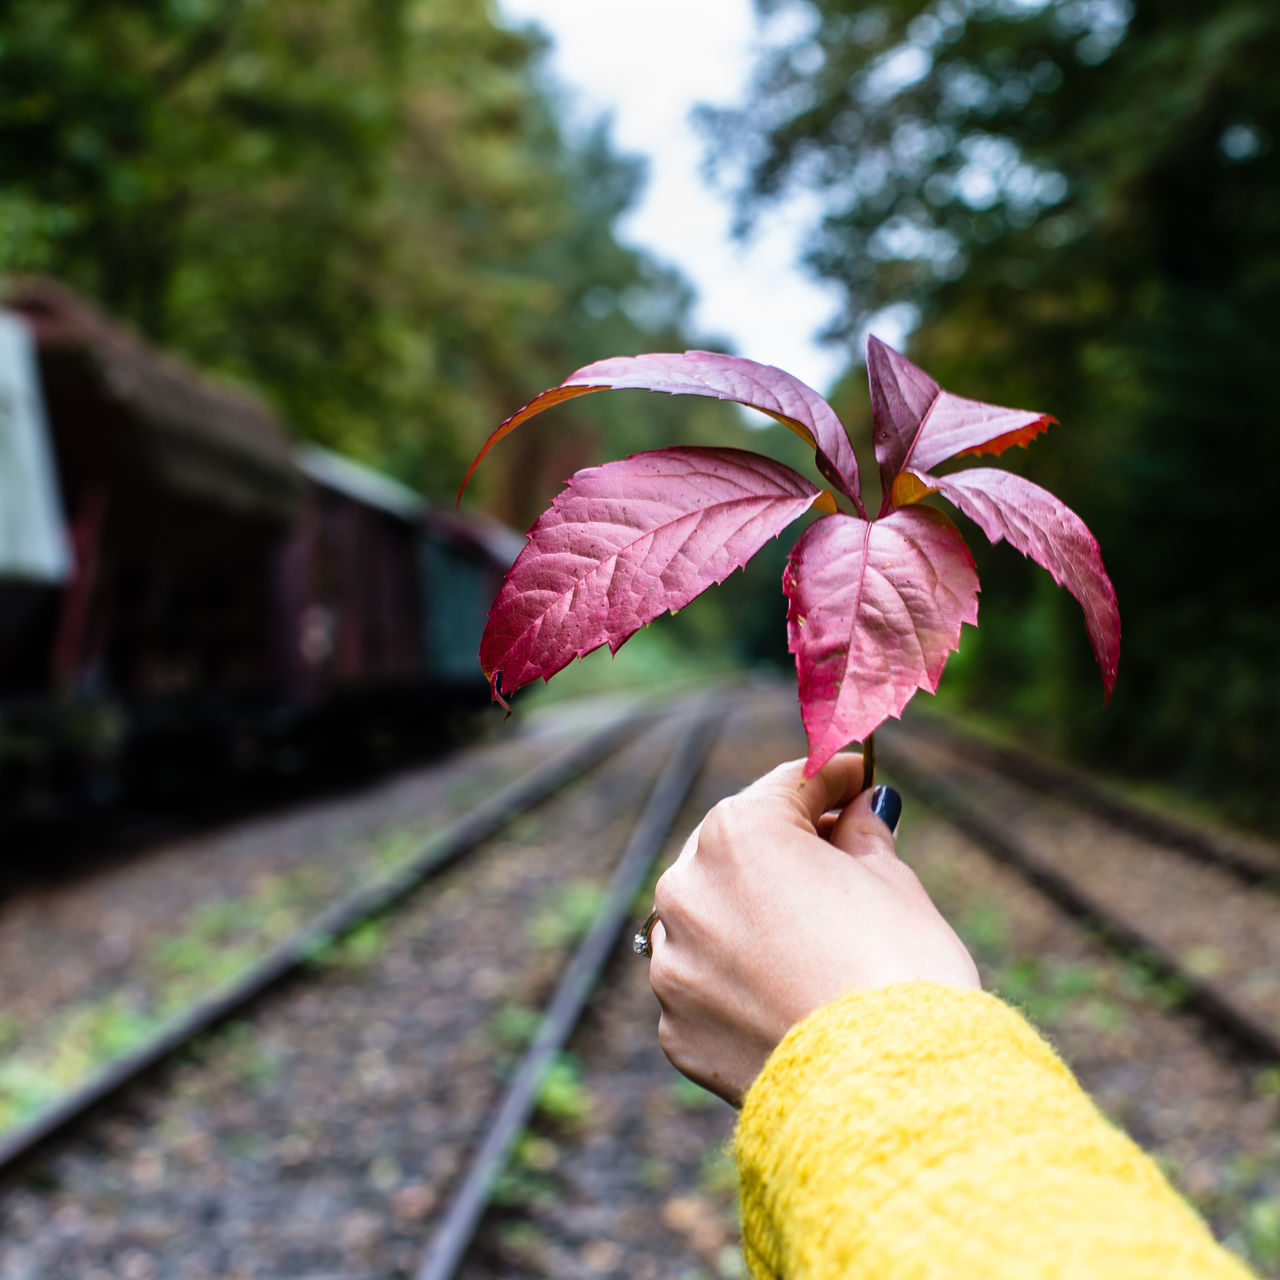 Autumn Watching / from my Autumn Sessions - more stuff on Instagram & Facebook Autumn Autumn Colors Botany Close-up Cropped Day Flower Flower Head Focus On Foreground Holding Human Finger Leaf Nature One Woman Only Outdoors Part Of Person Personal Perspective Pink Color Railway Railway Track Red TakeoverContrast